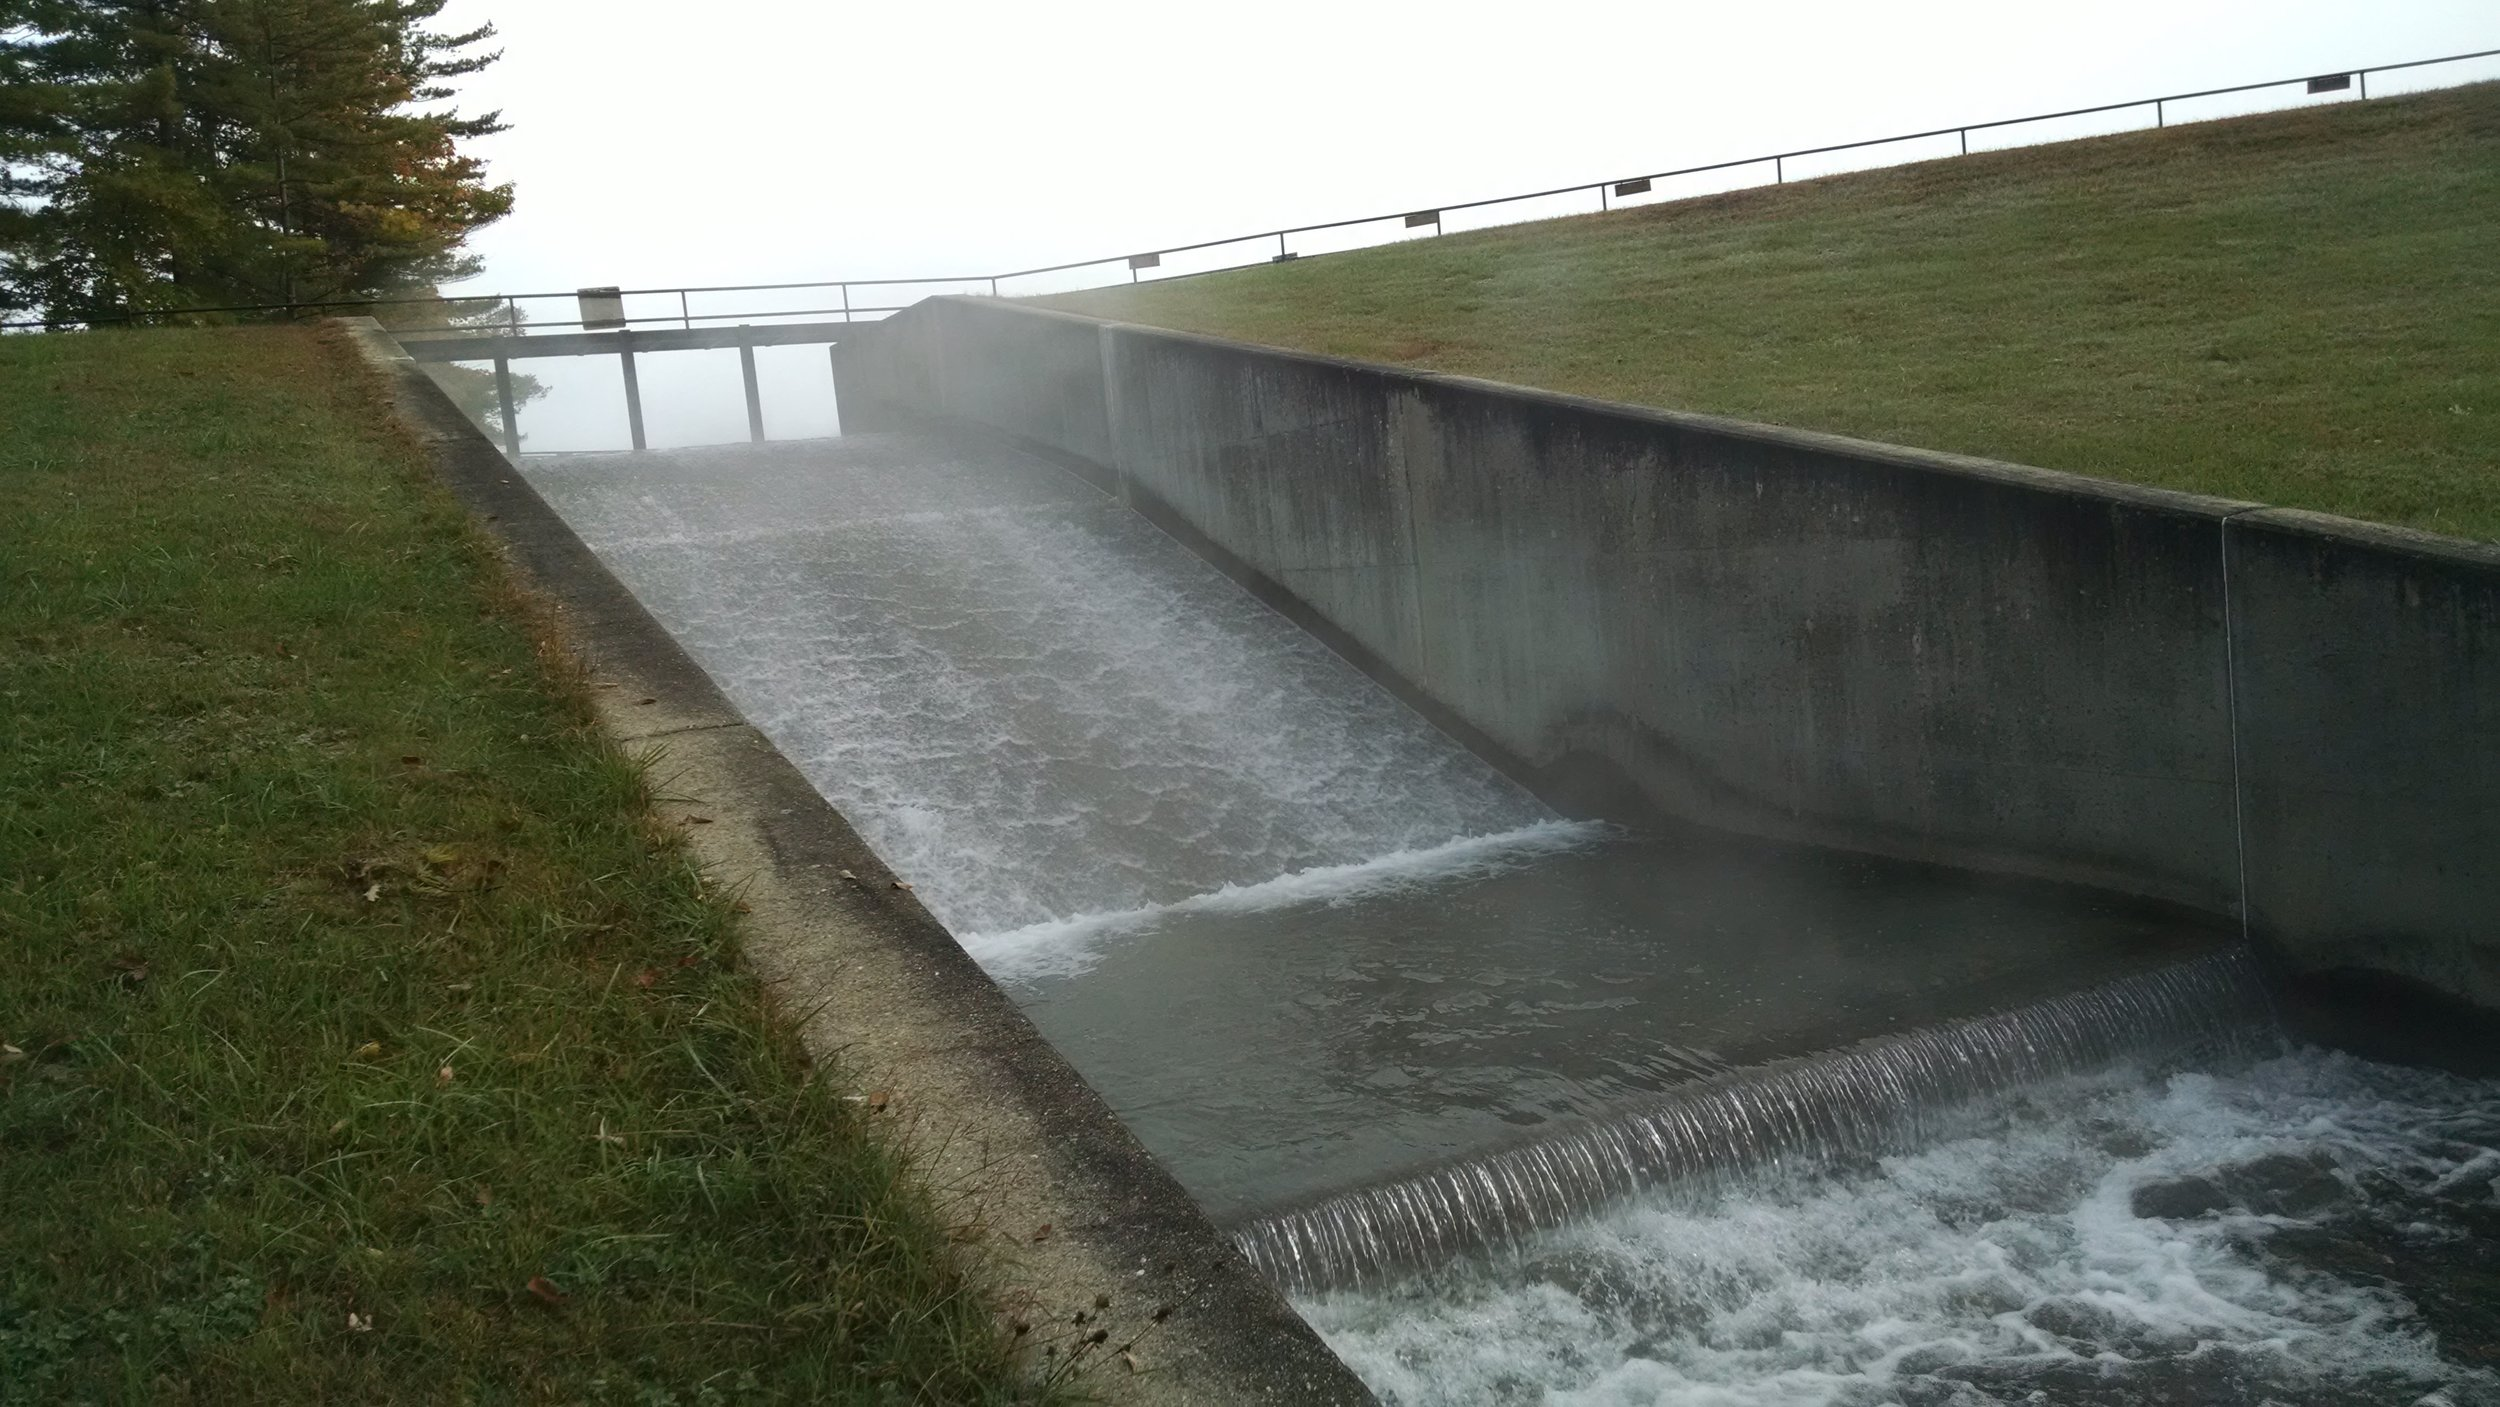 The Merrymeeting Lake dam...opened up and letting water out.